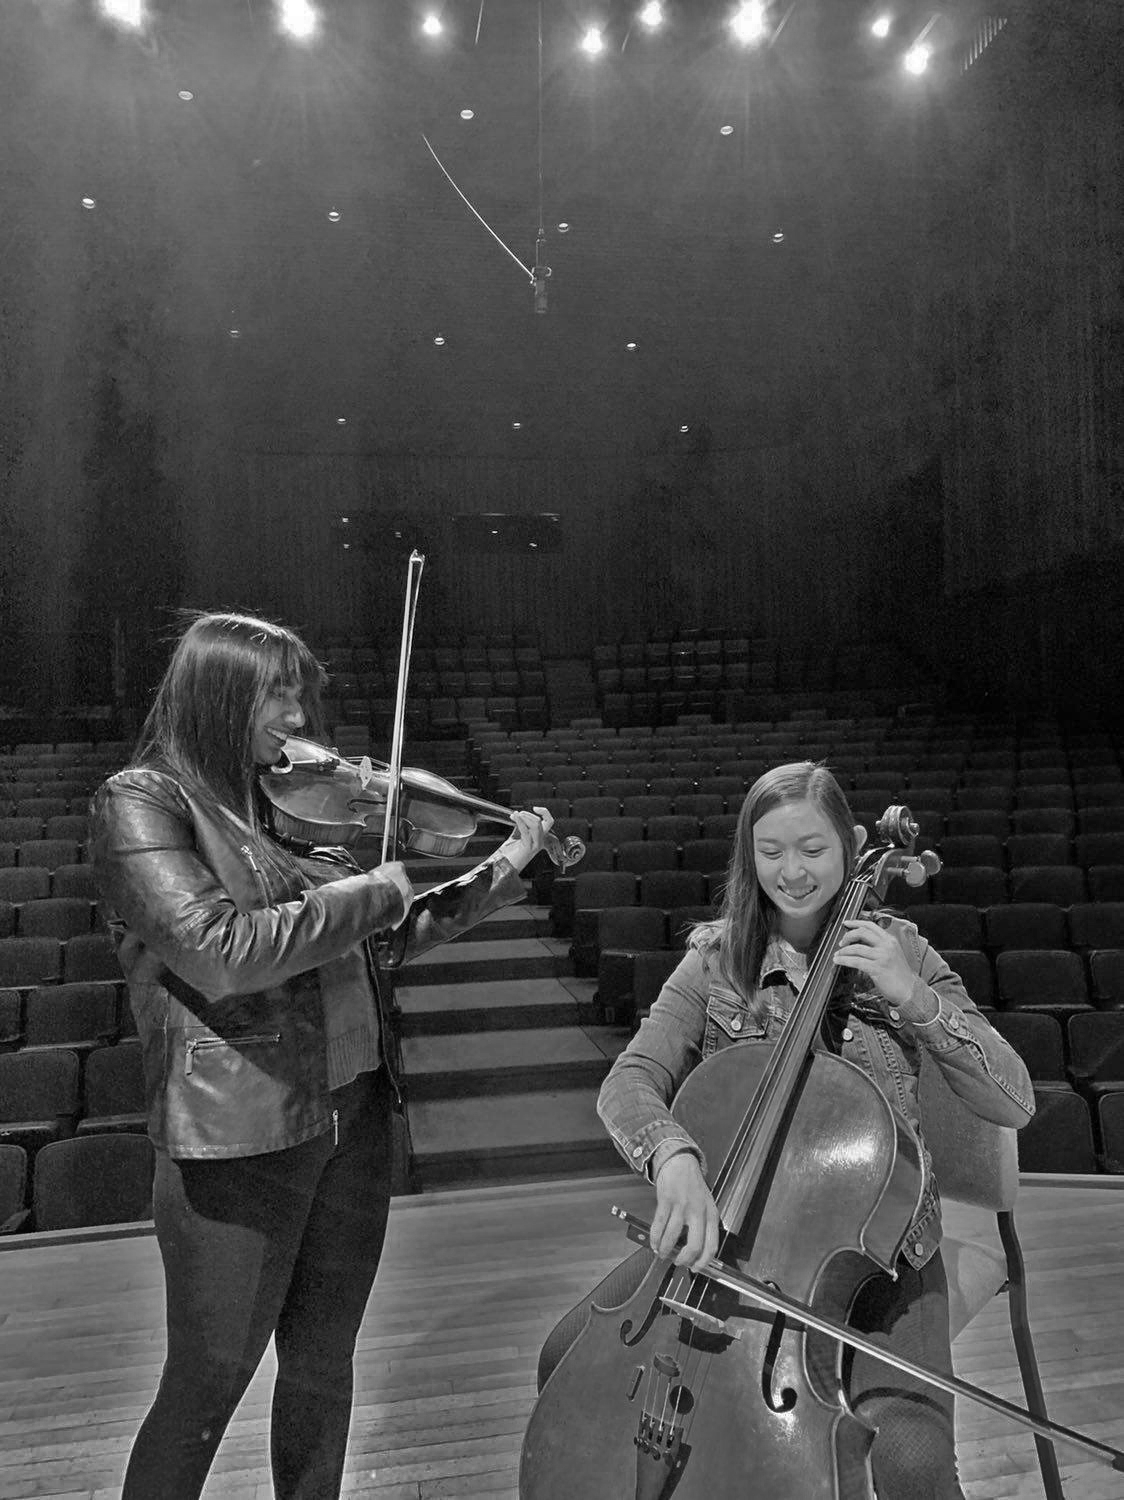 Lowe (left) and Yee (right) rehearse for their recital.